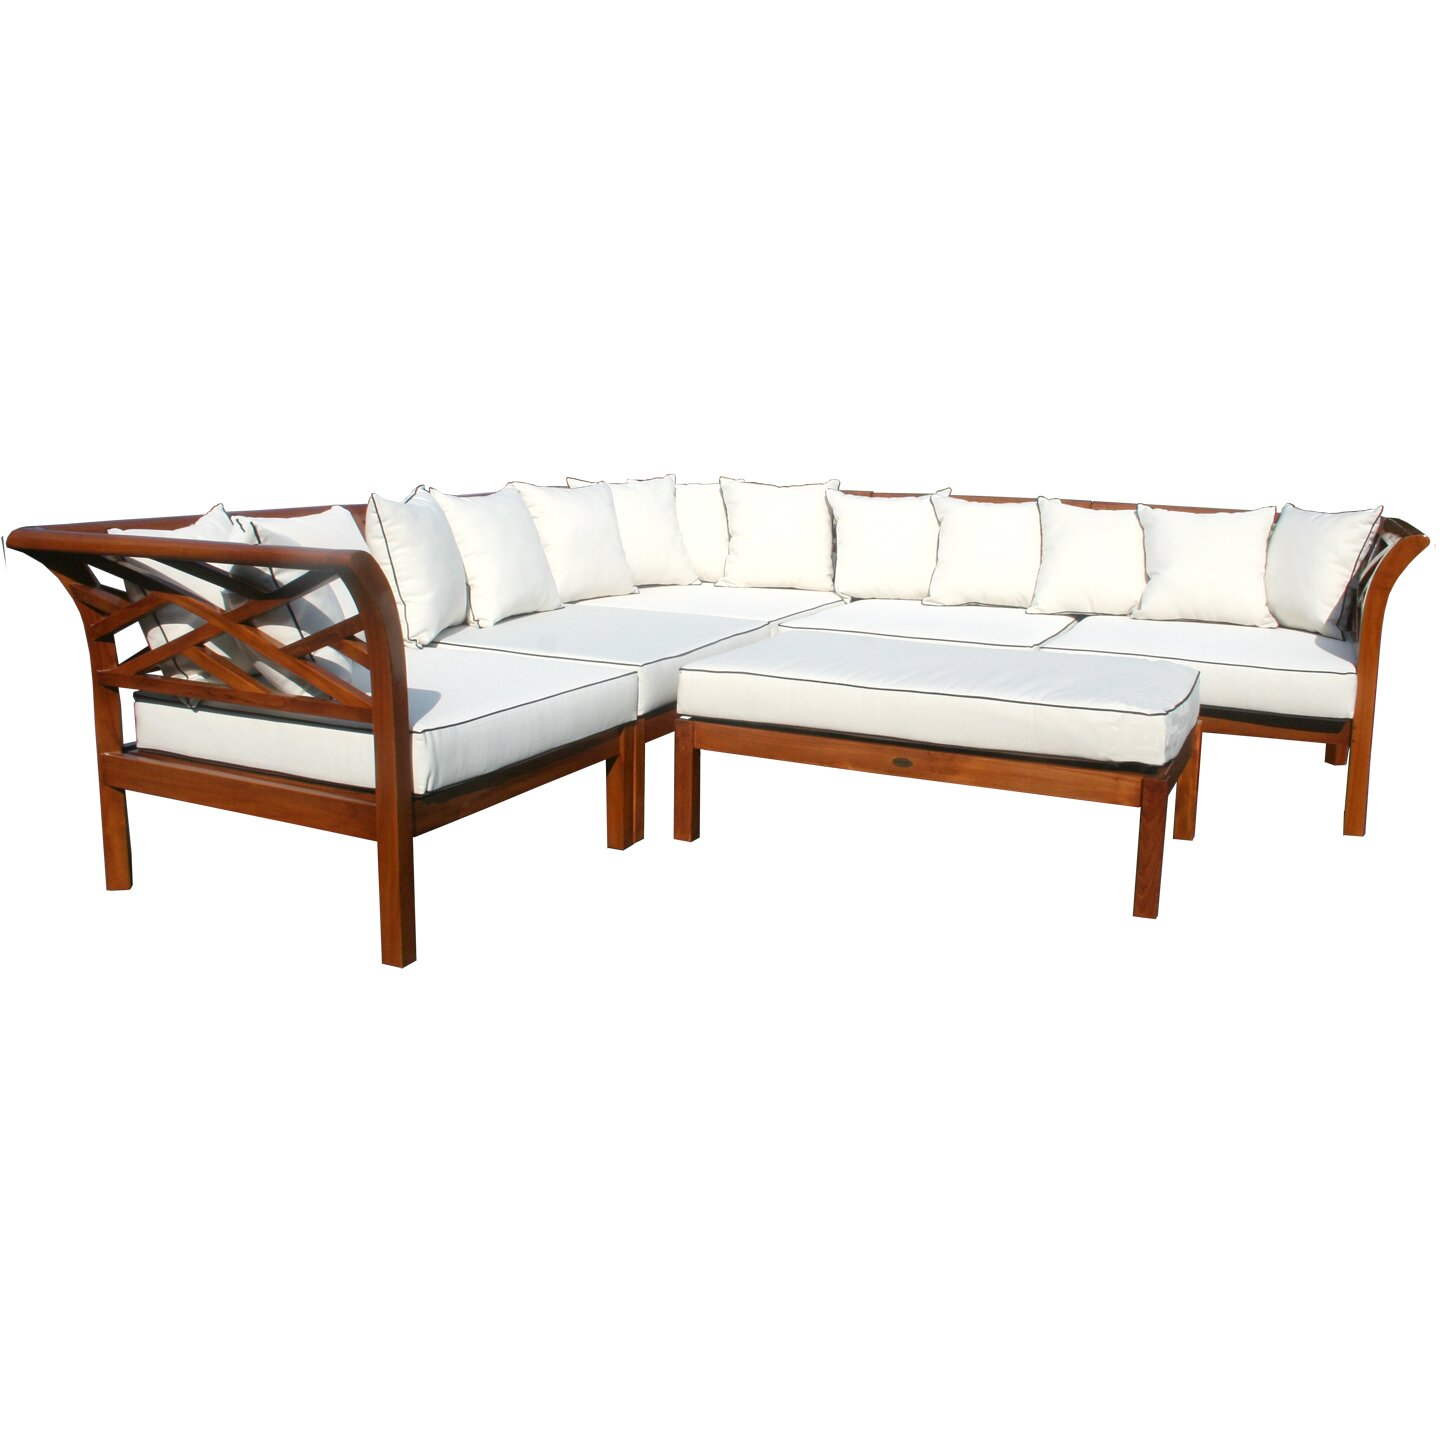 ChicTeak Long Island Modular Sectional Wayfair - Outdoor furniture long island